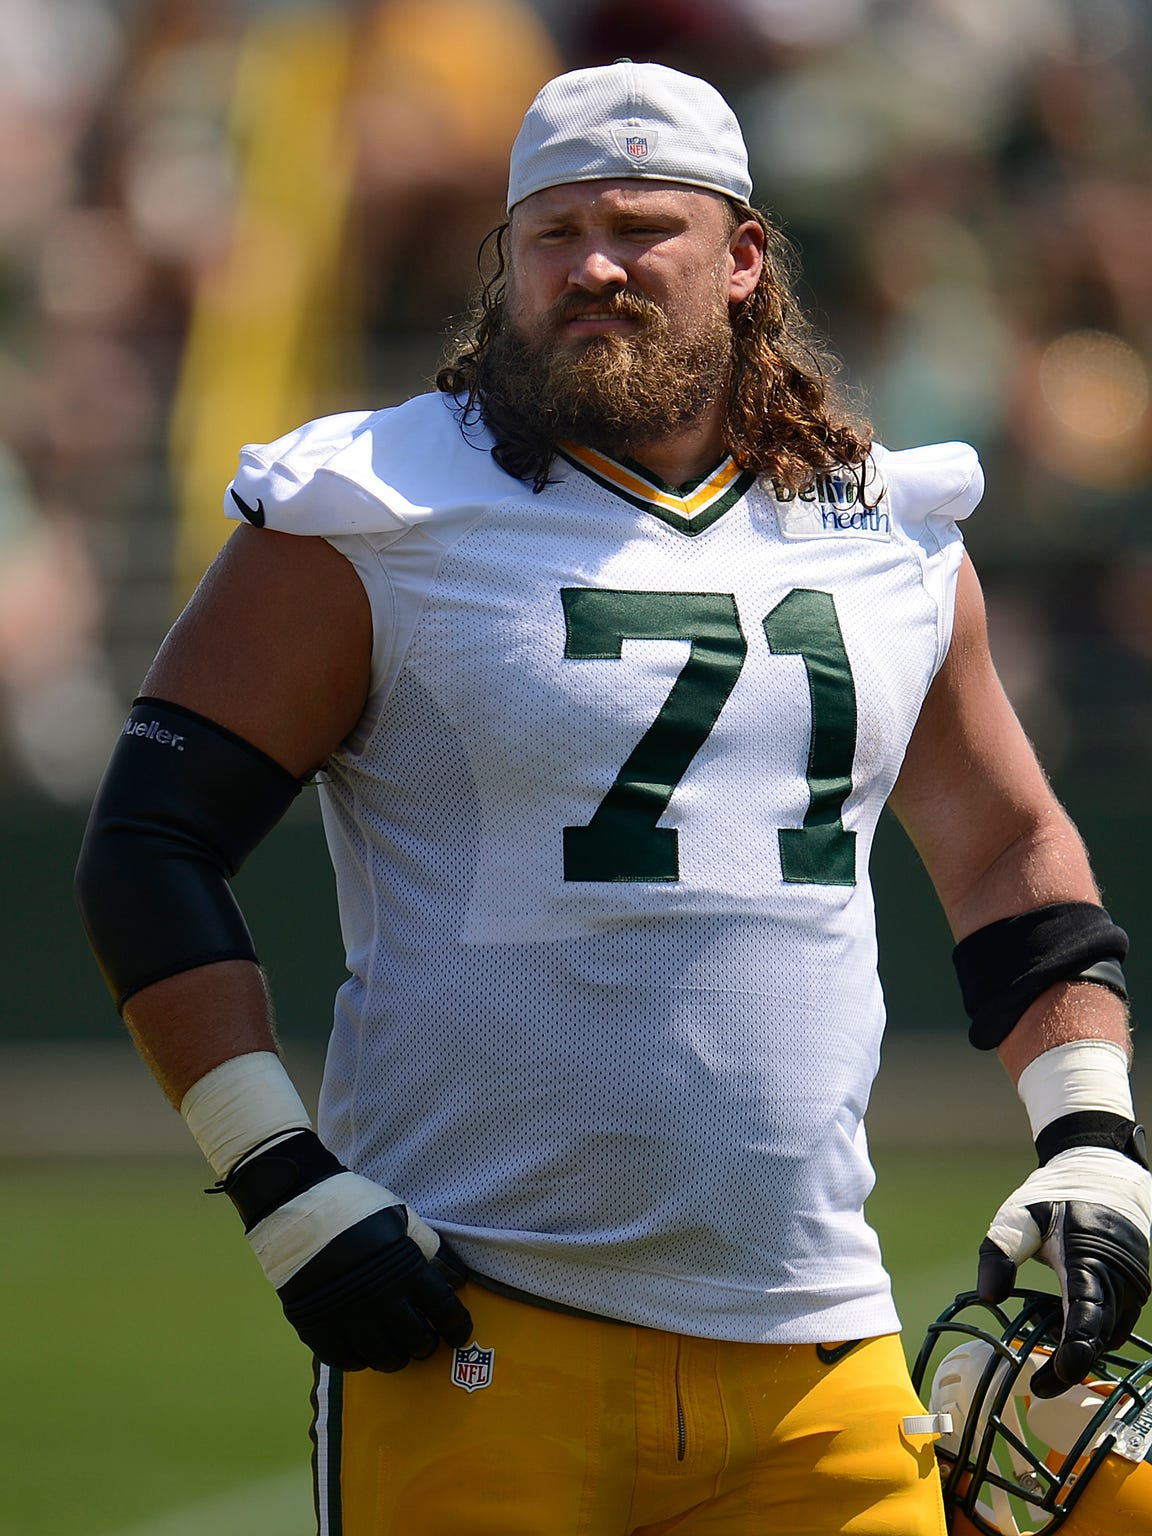 Green Bay Packers guard Josh Sitton during training camp practice at Ray Nitschke Field on Saturday, Aug. 15, 2015.